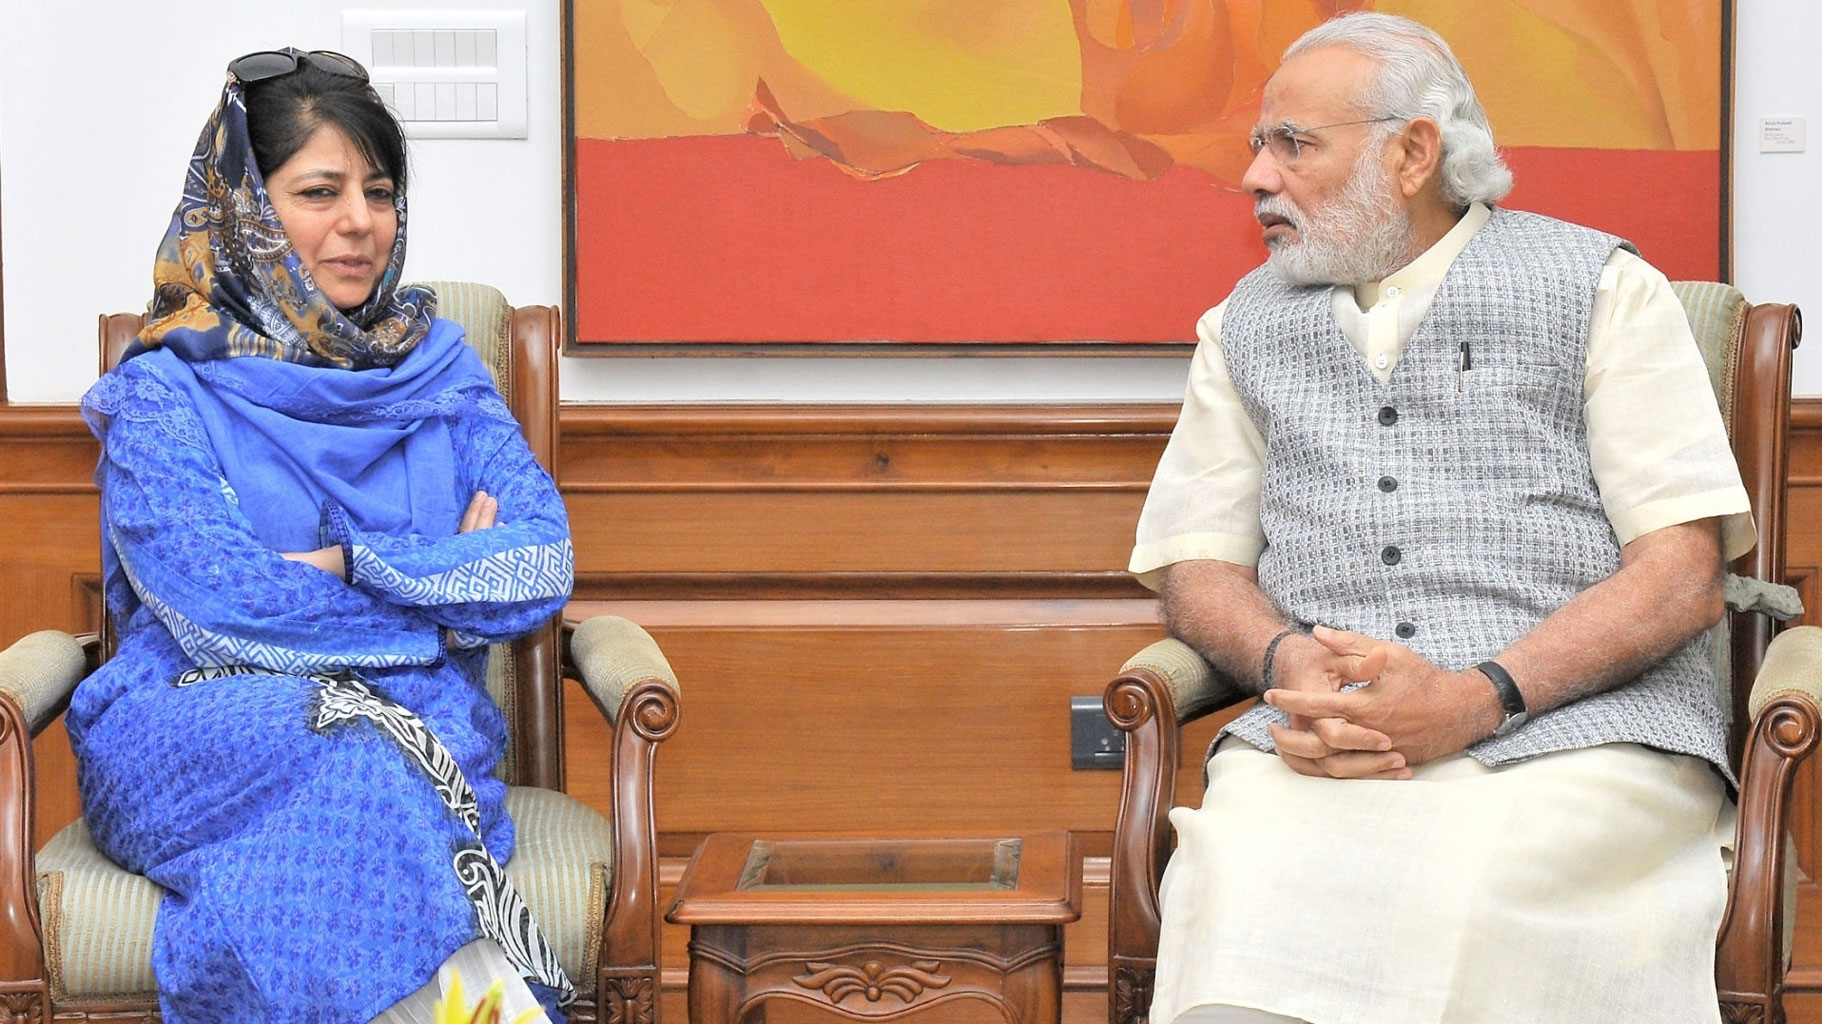 'Pak's Nukes Aren't Kept For Eid Either': Mufti's Jibe at PM Modi